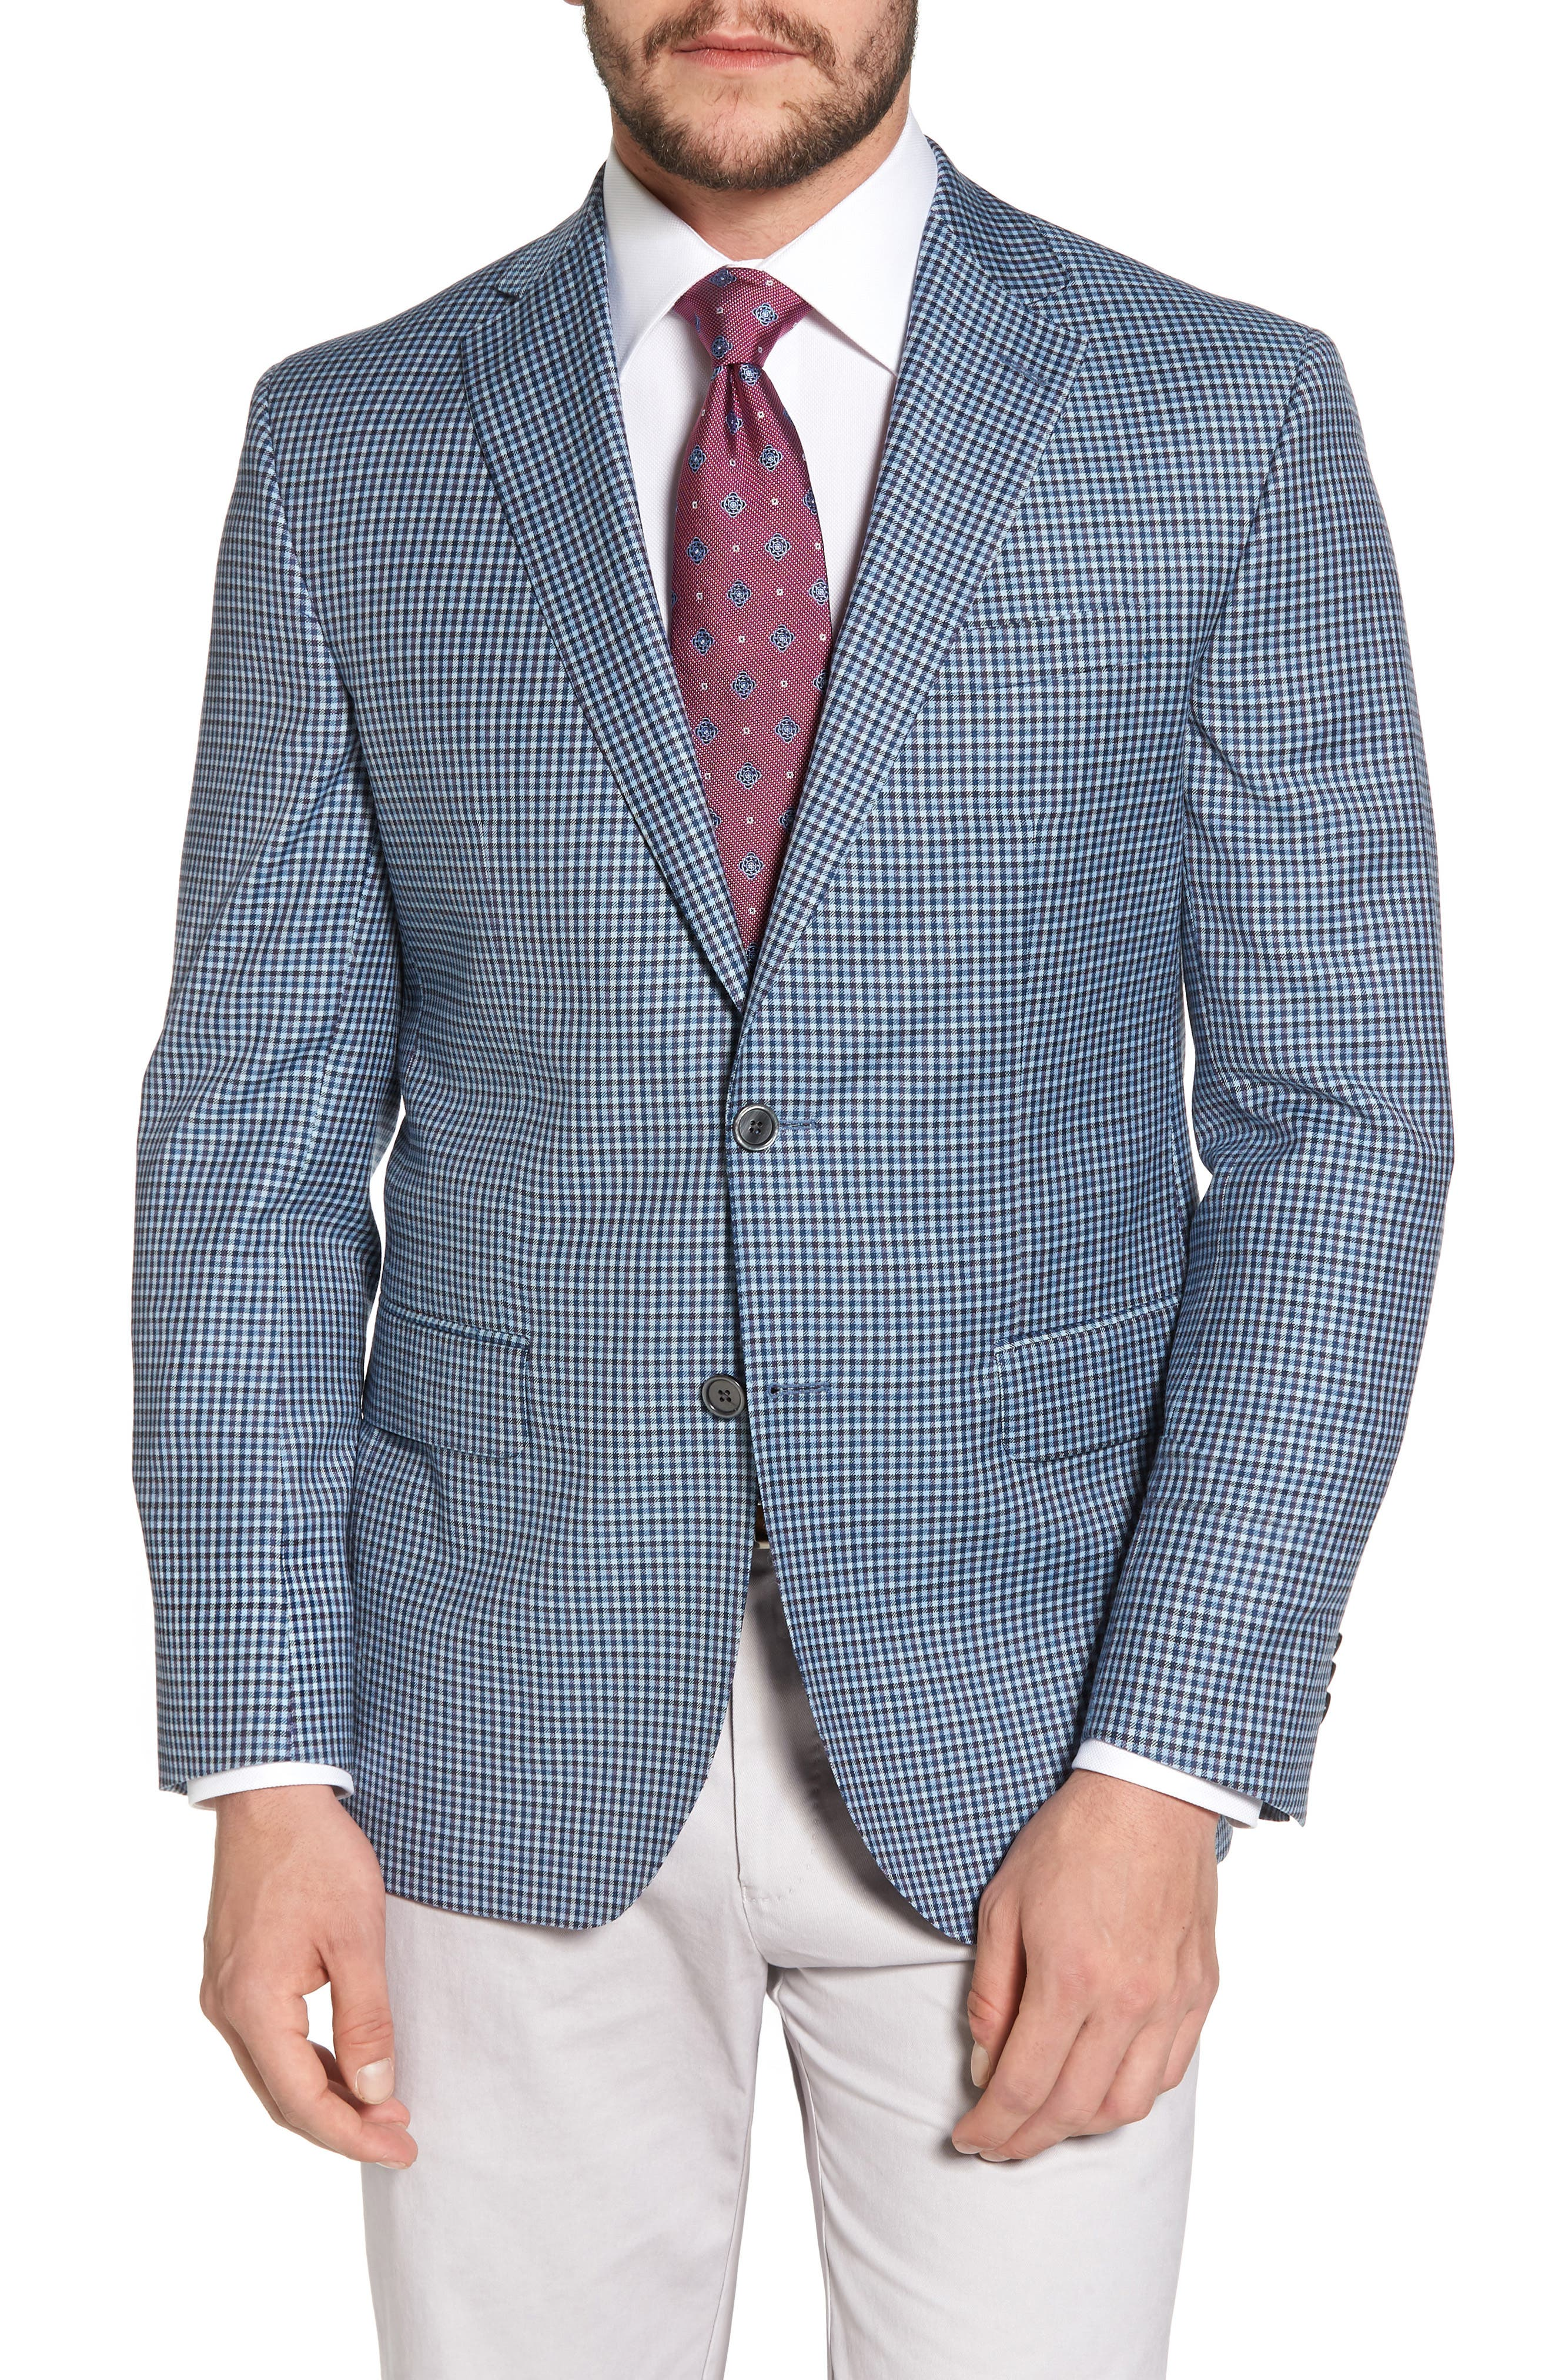 Arnold Classic Fit Check Wool Sport Coat,                             Main thumbnail 1, color,                             400